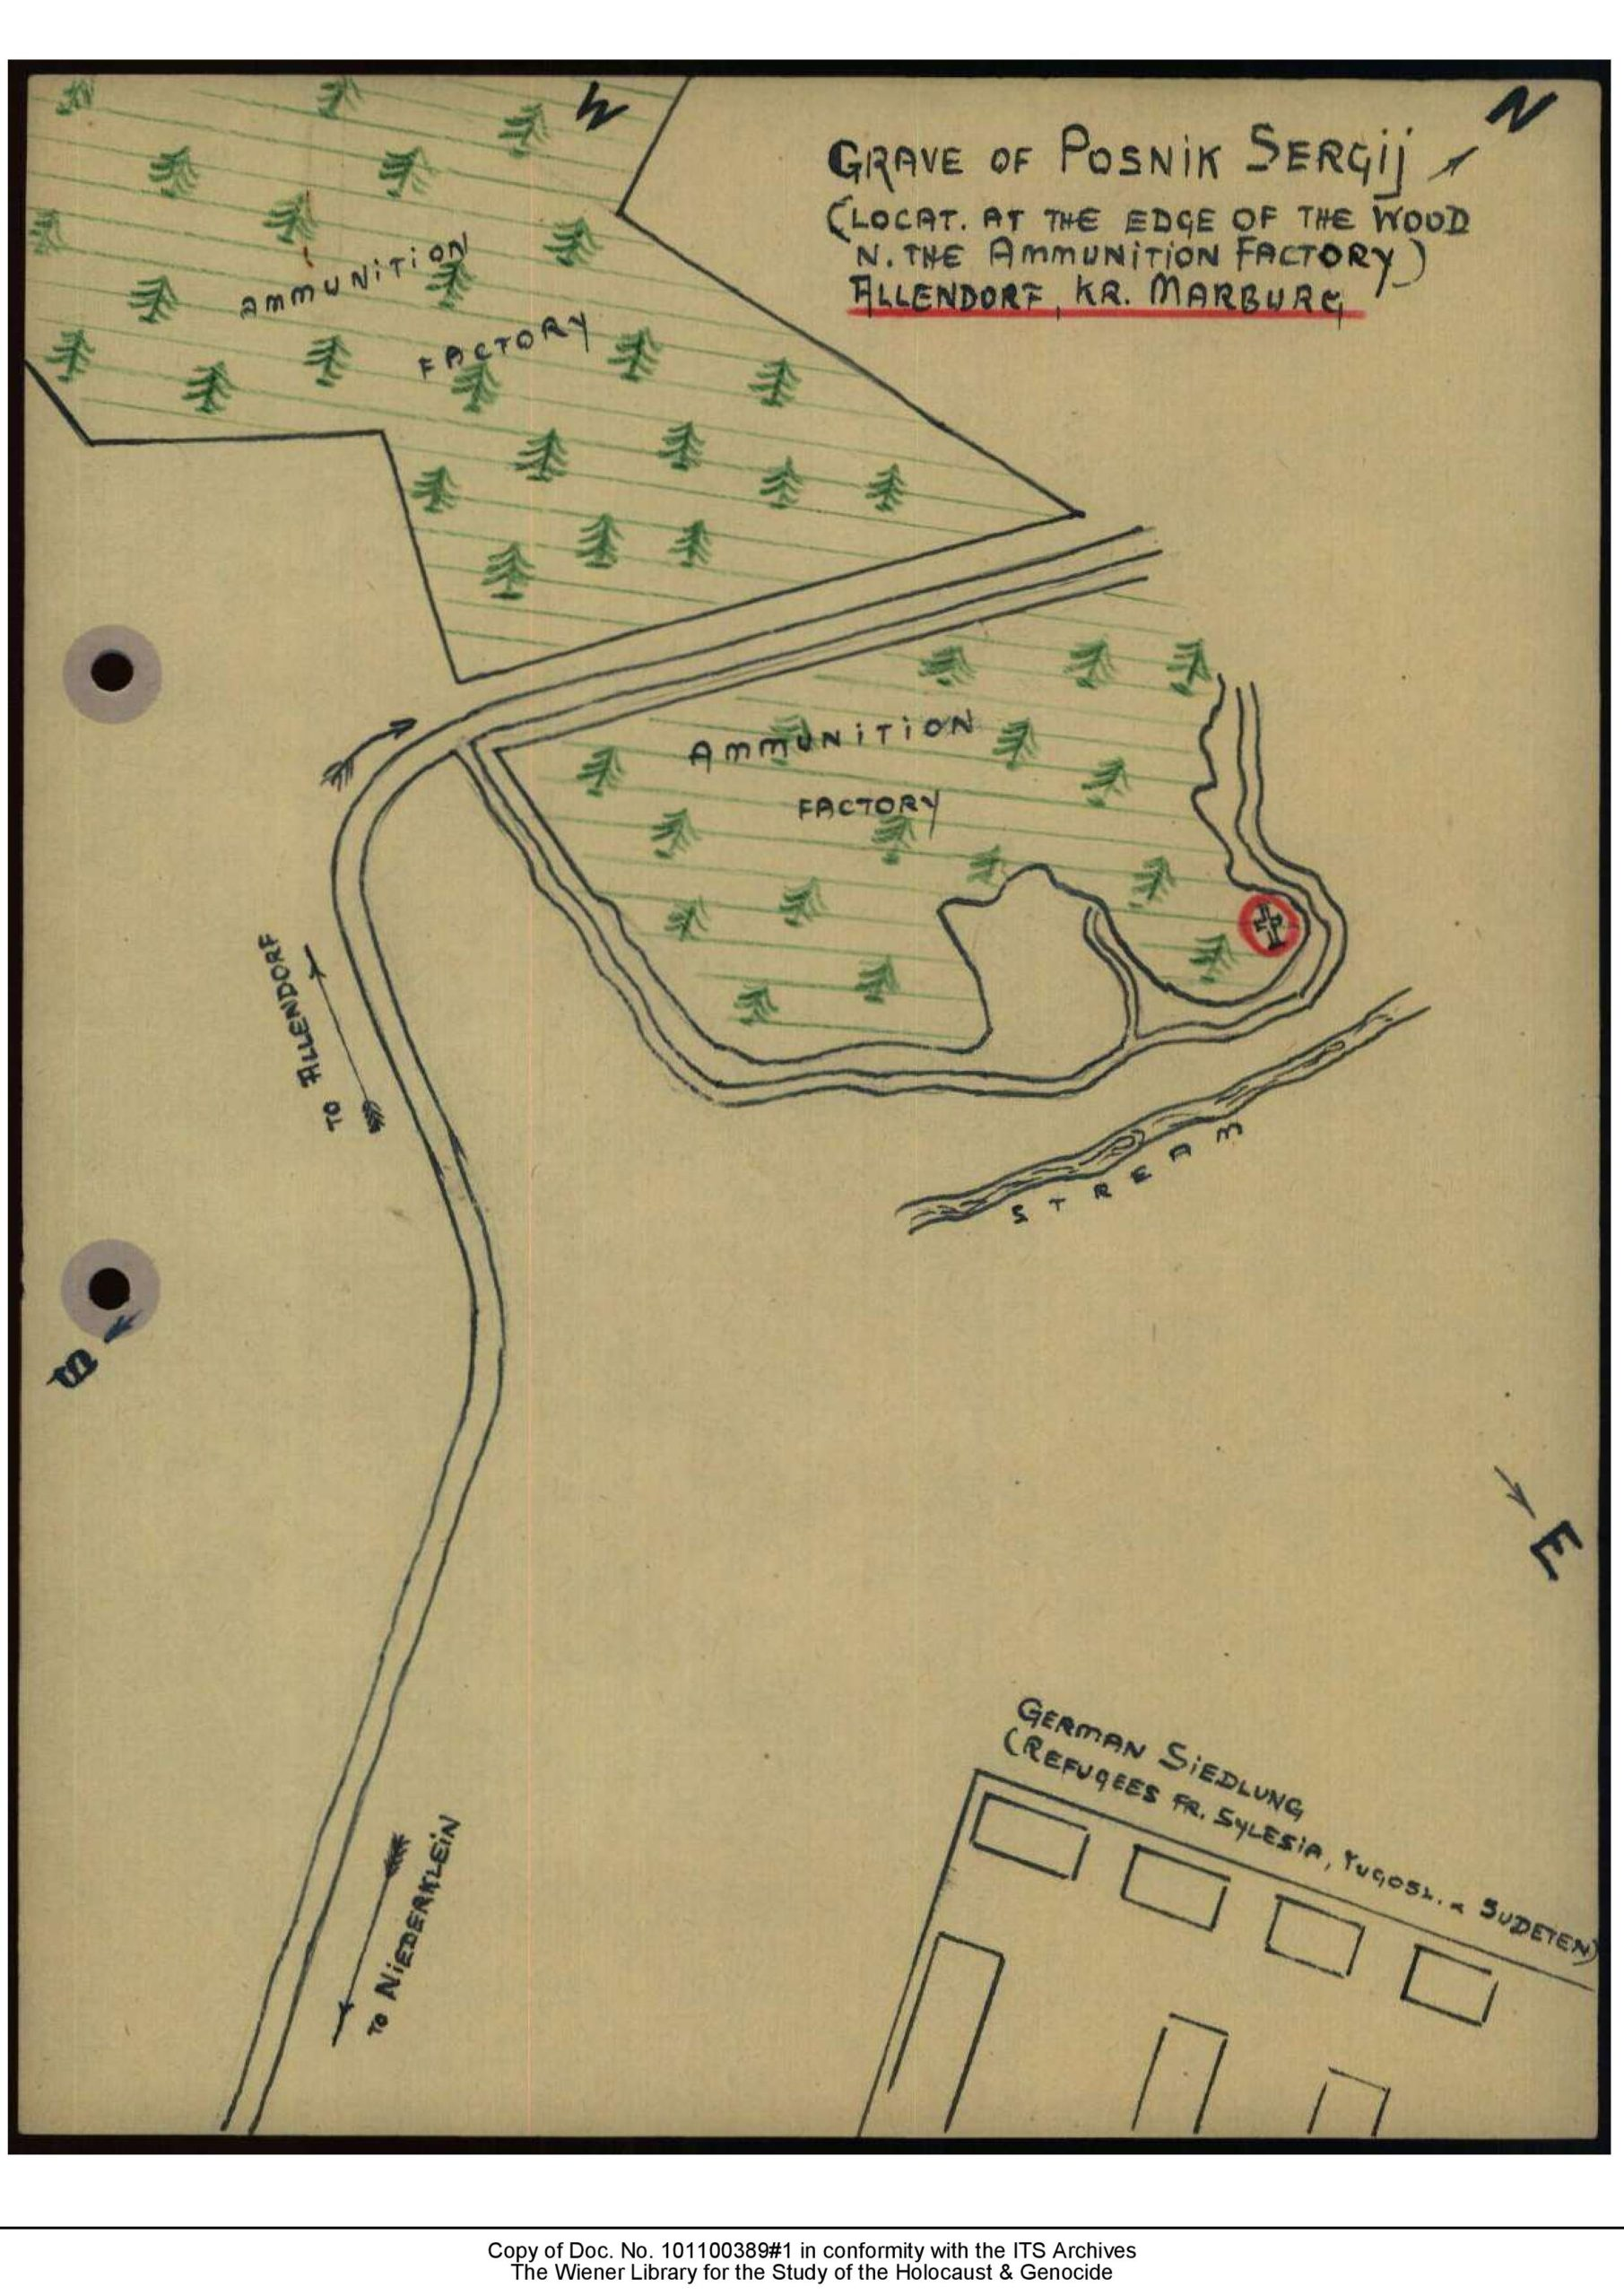 illustration showing the location of a mass grave near Marburg